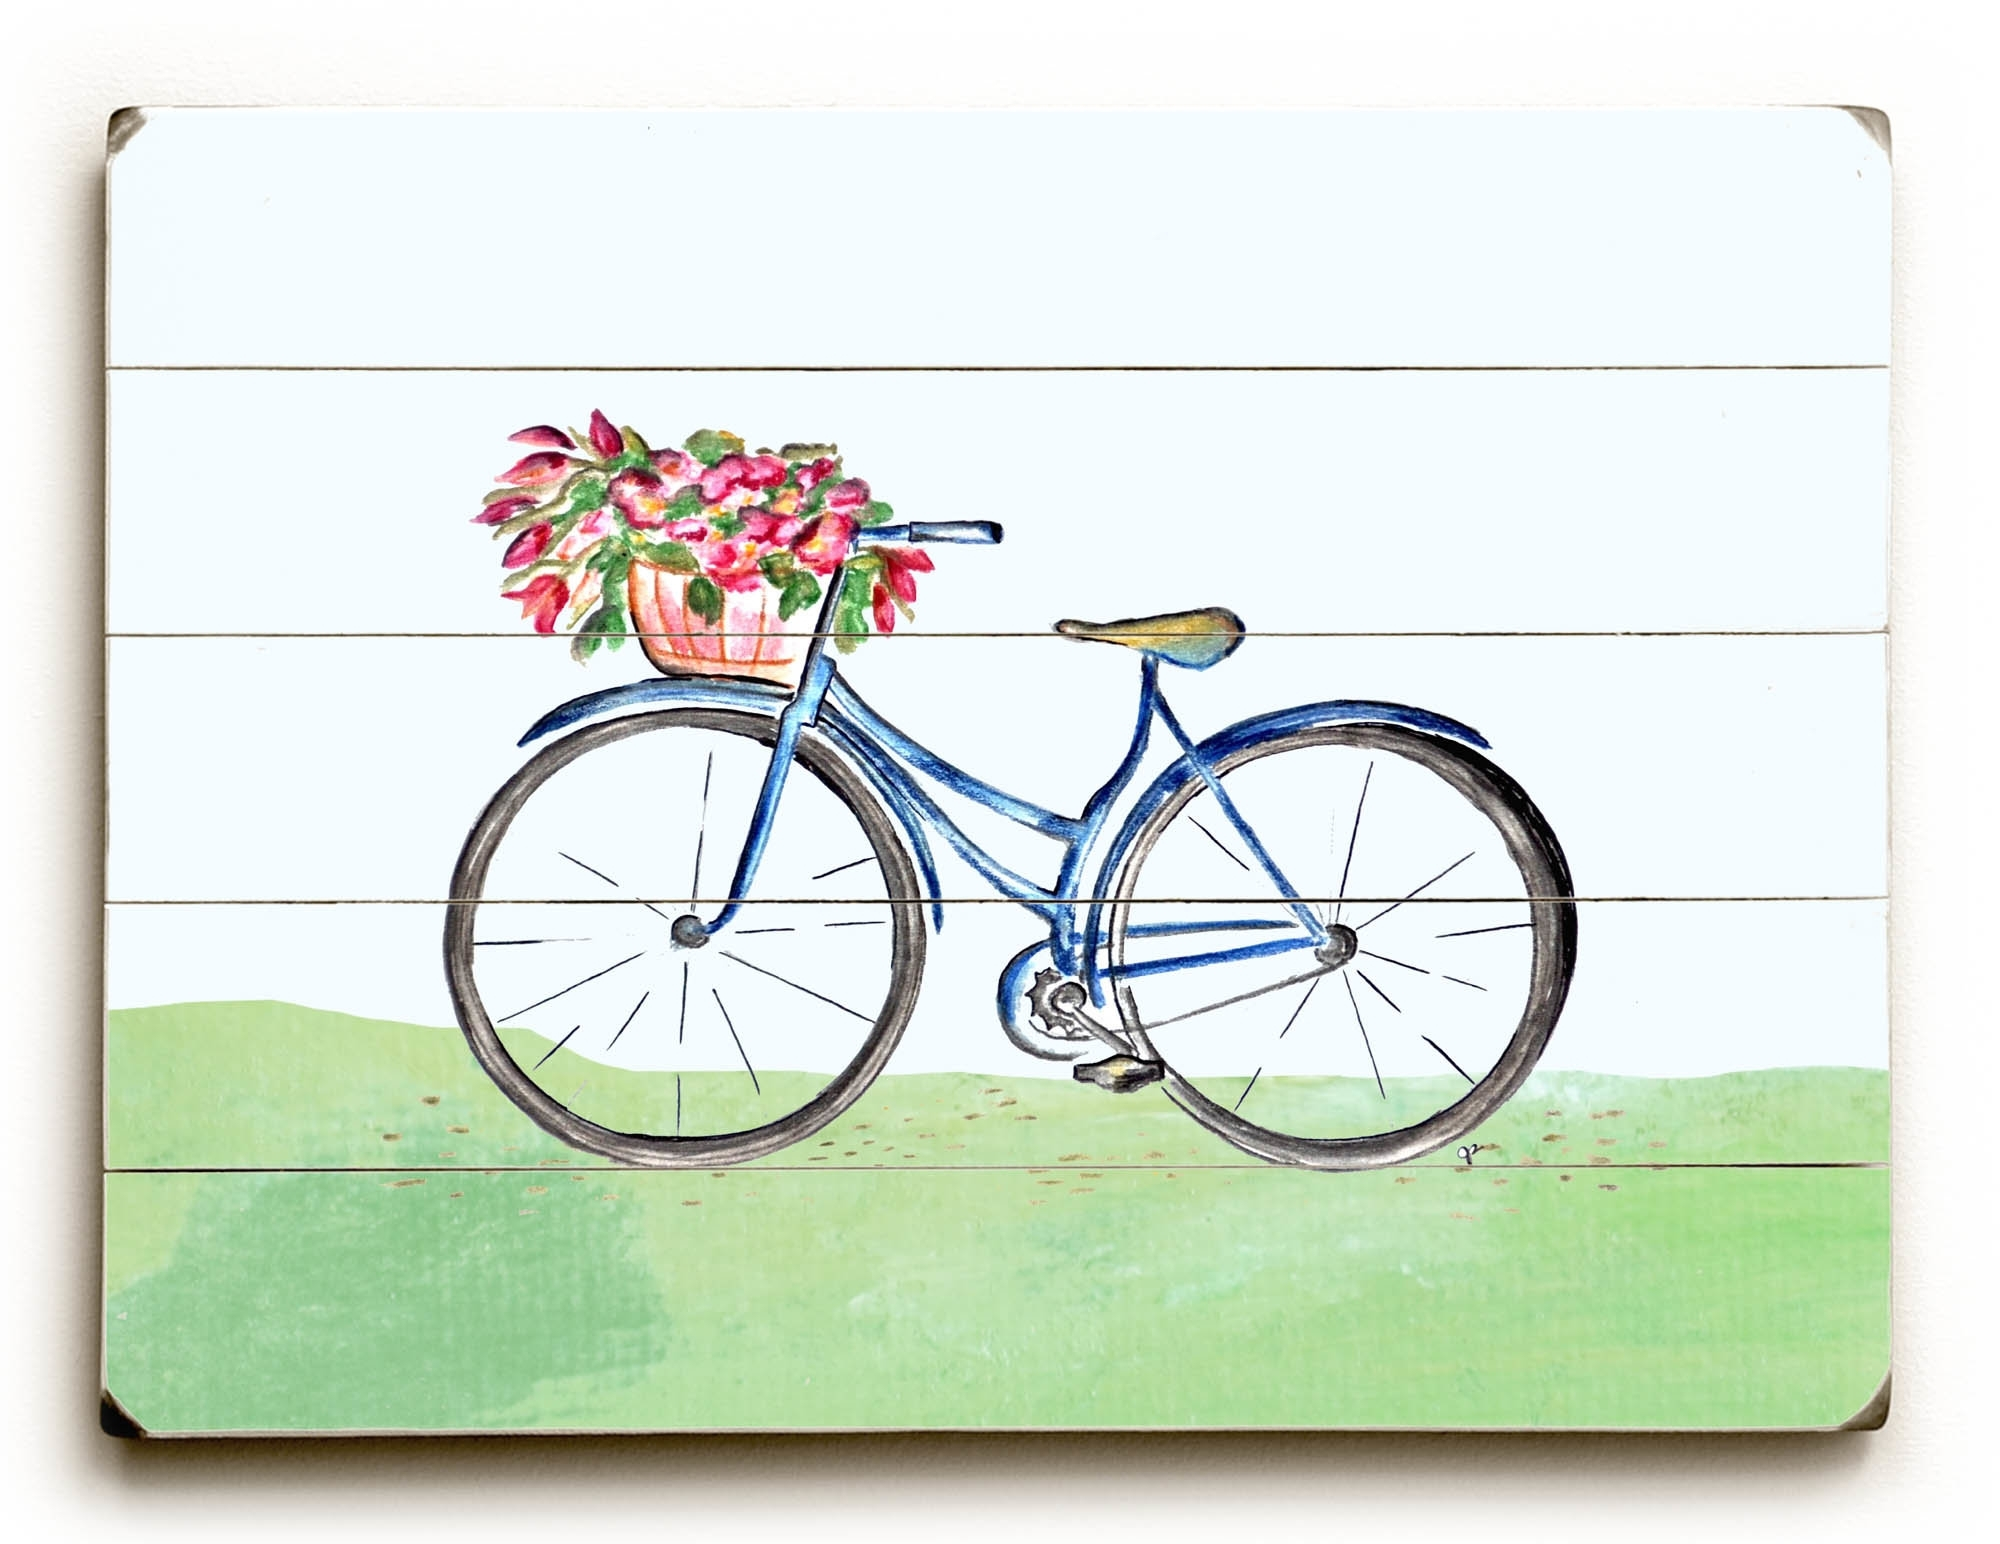 August Grove 'spring Bicycle' Wall Art Plaque | Wayfair In Most Up To Date Bicycle Wall Art (View 3 of 20)